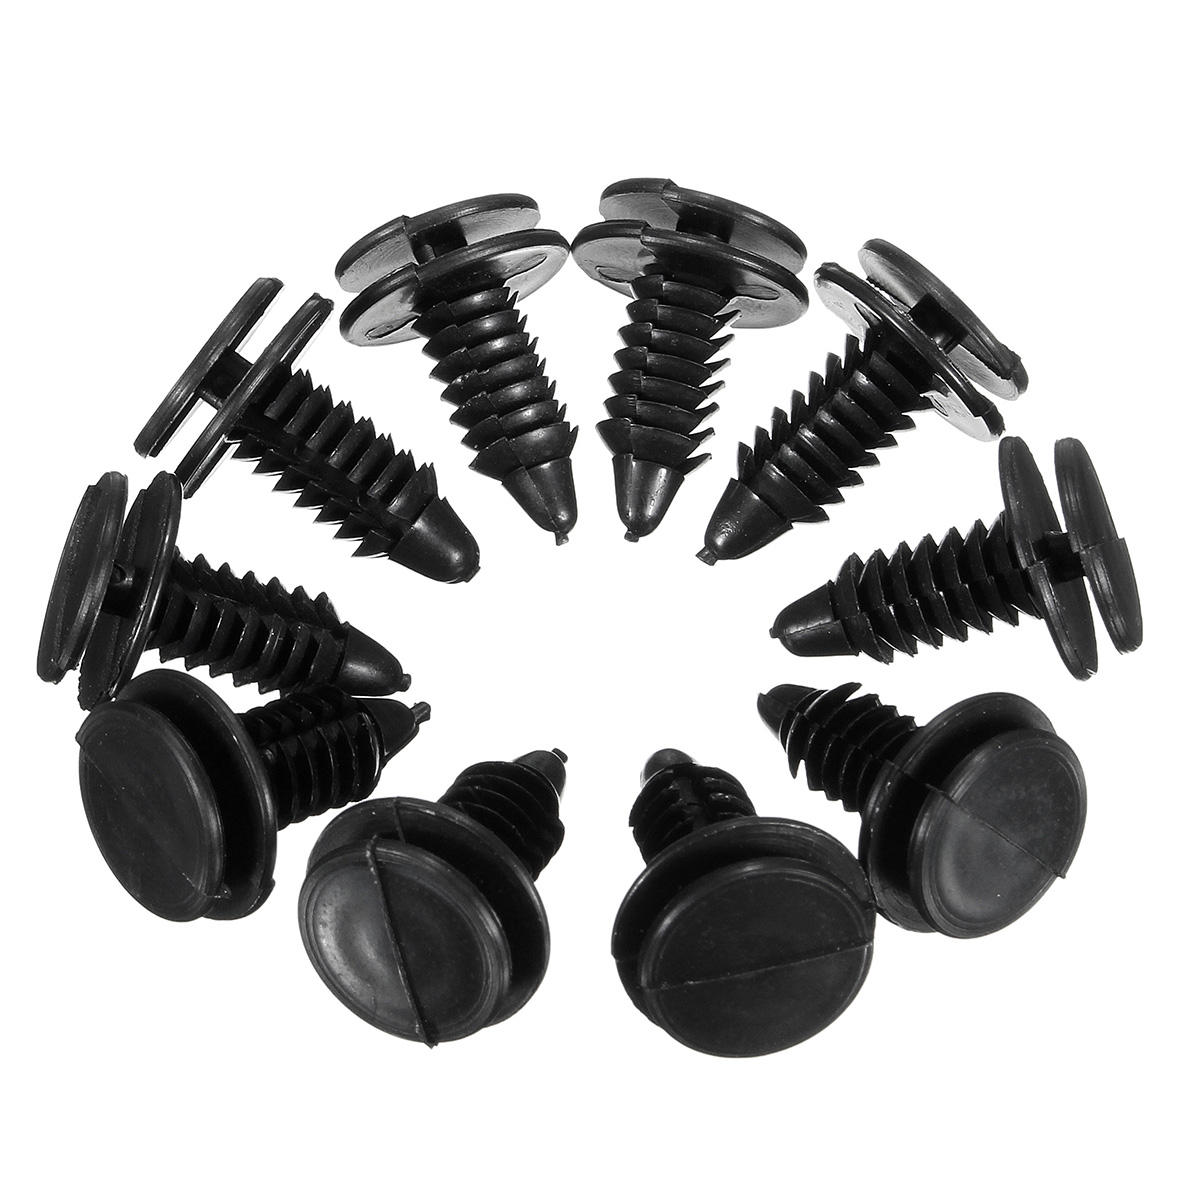 hight resolution of 10 interior door trim plastic panel retainers clips for ford trucks f 150 f 250 cod